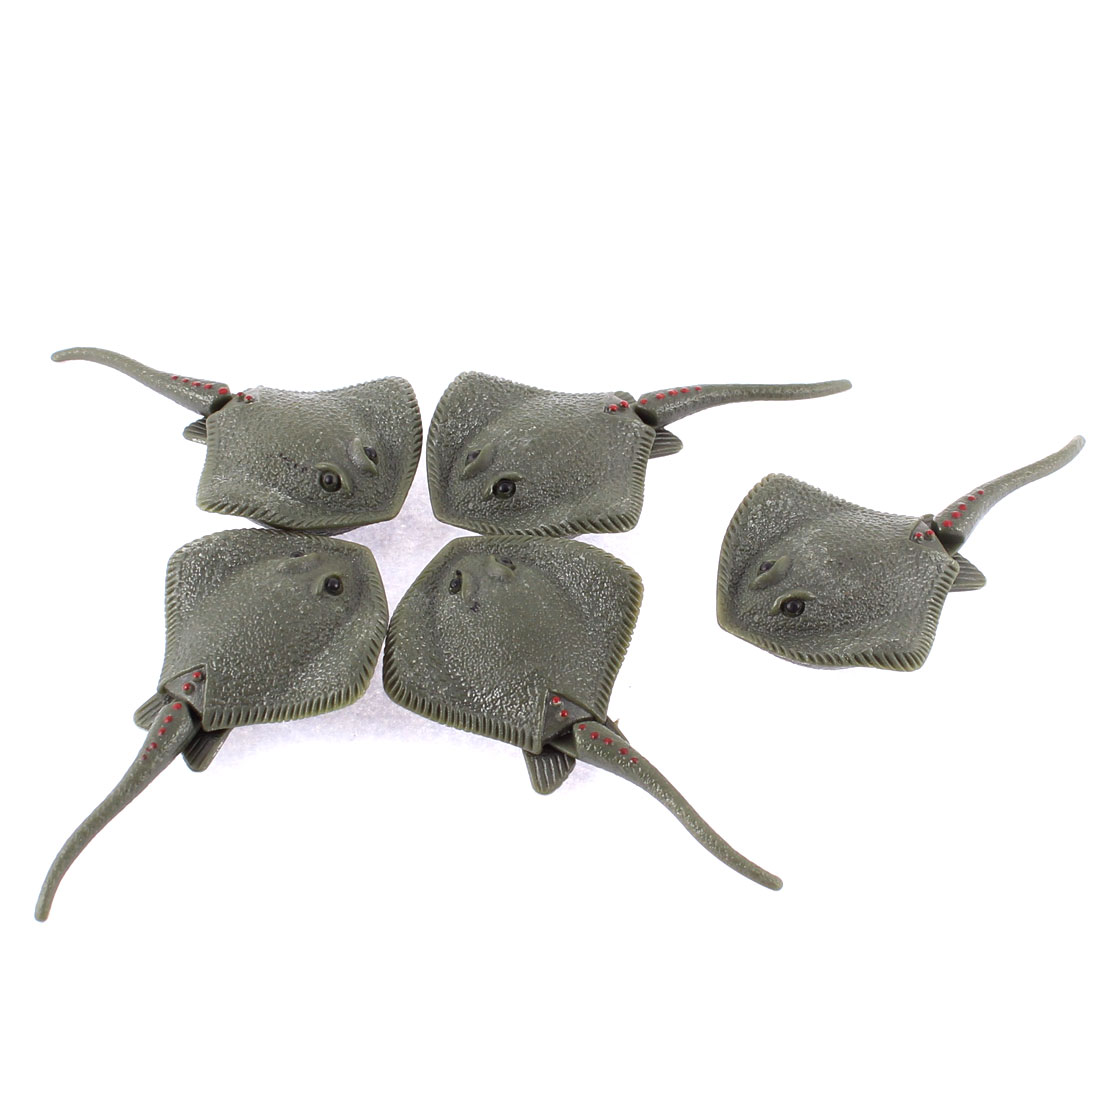 5 Pcs Olive Green Plastic Manmade Emulation Stingray Fish Ornament for Aquarium Fish Tank